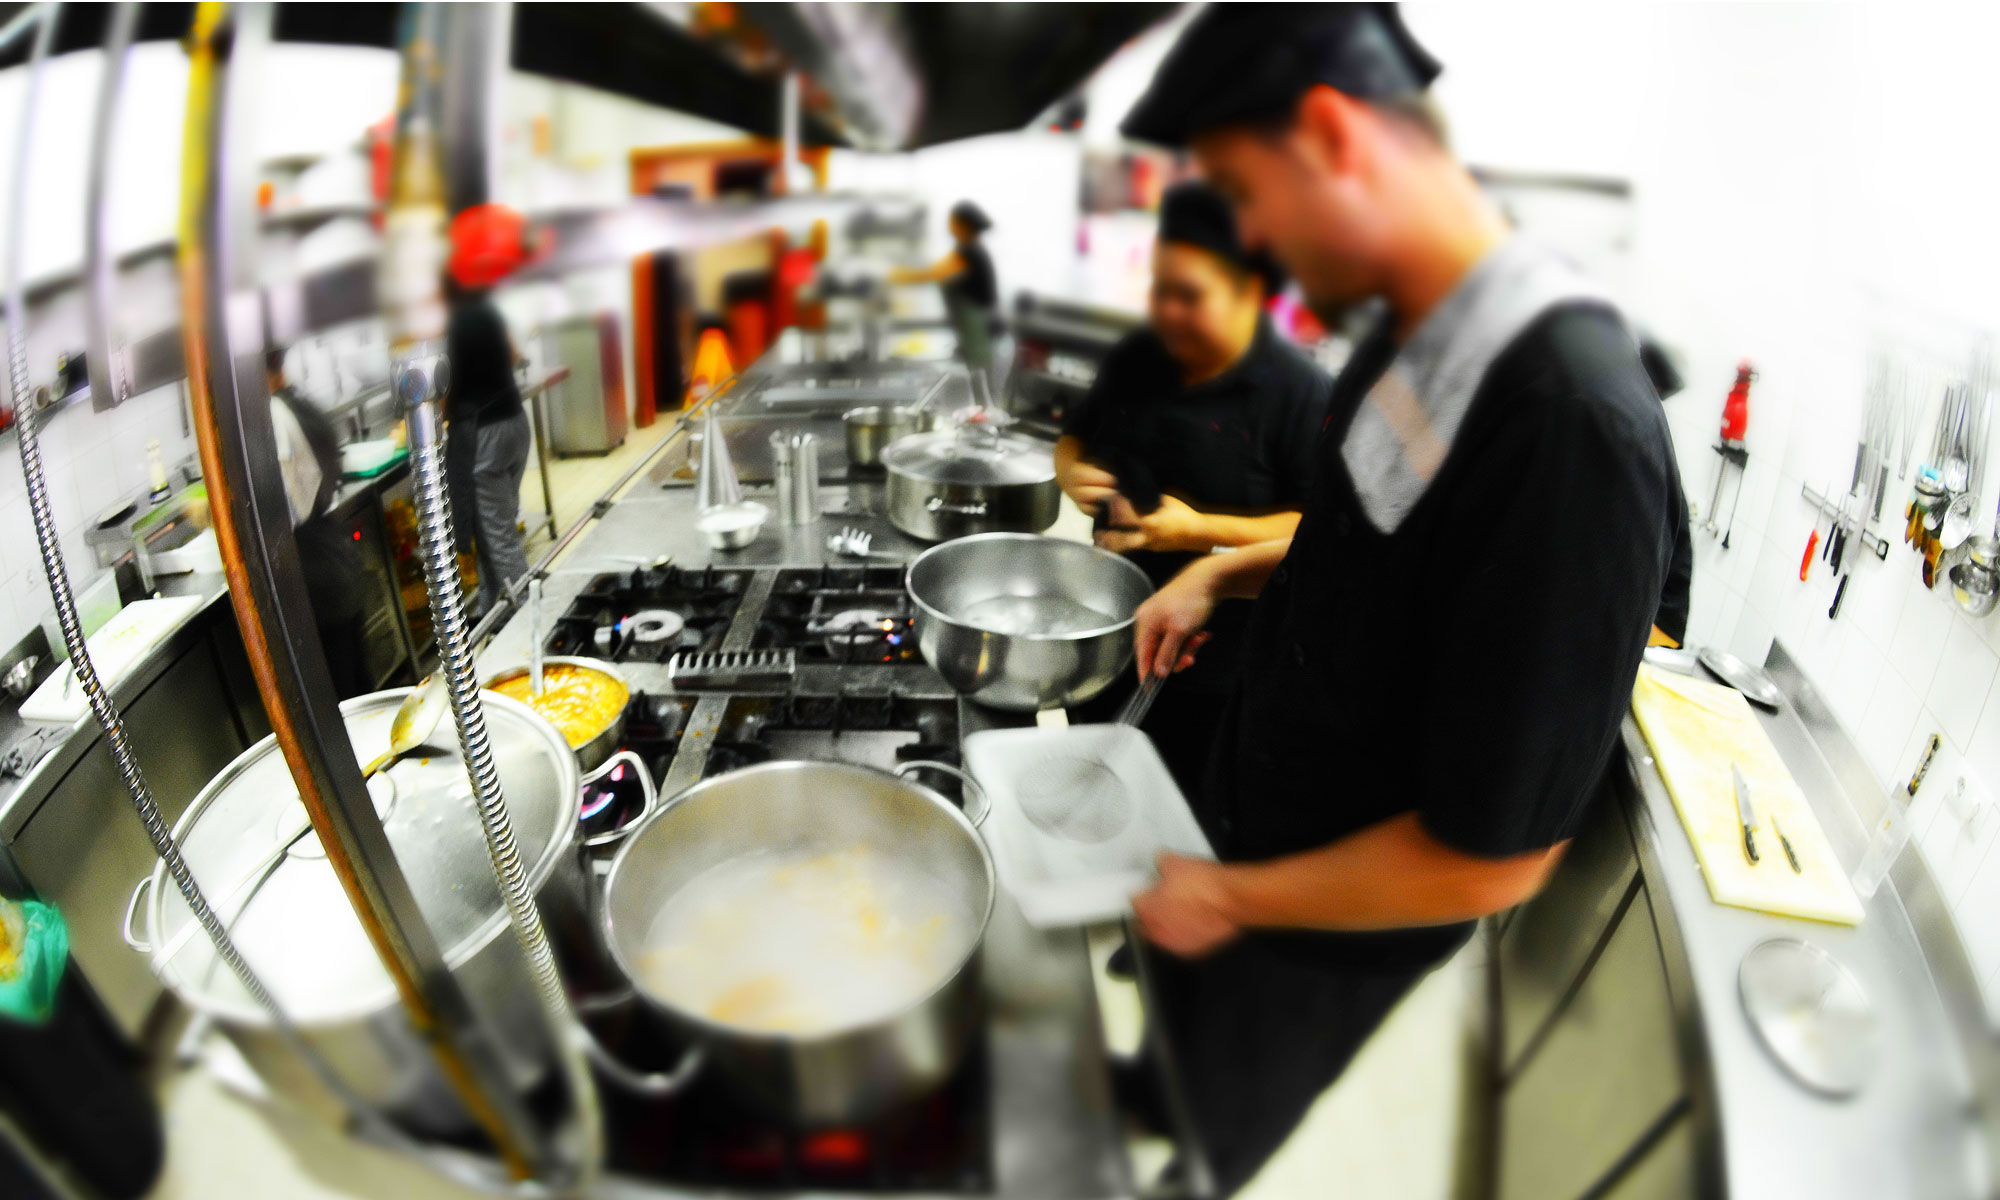 The Kitchen team at work